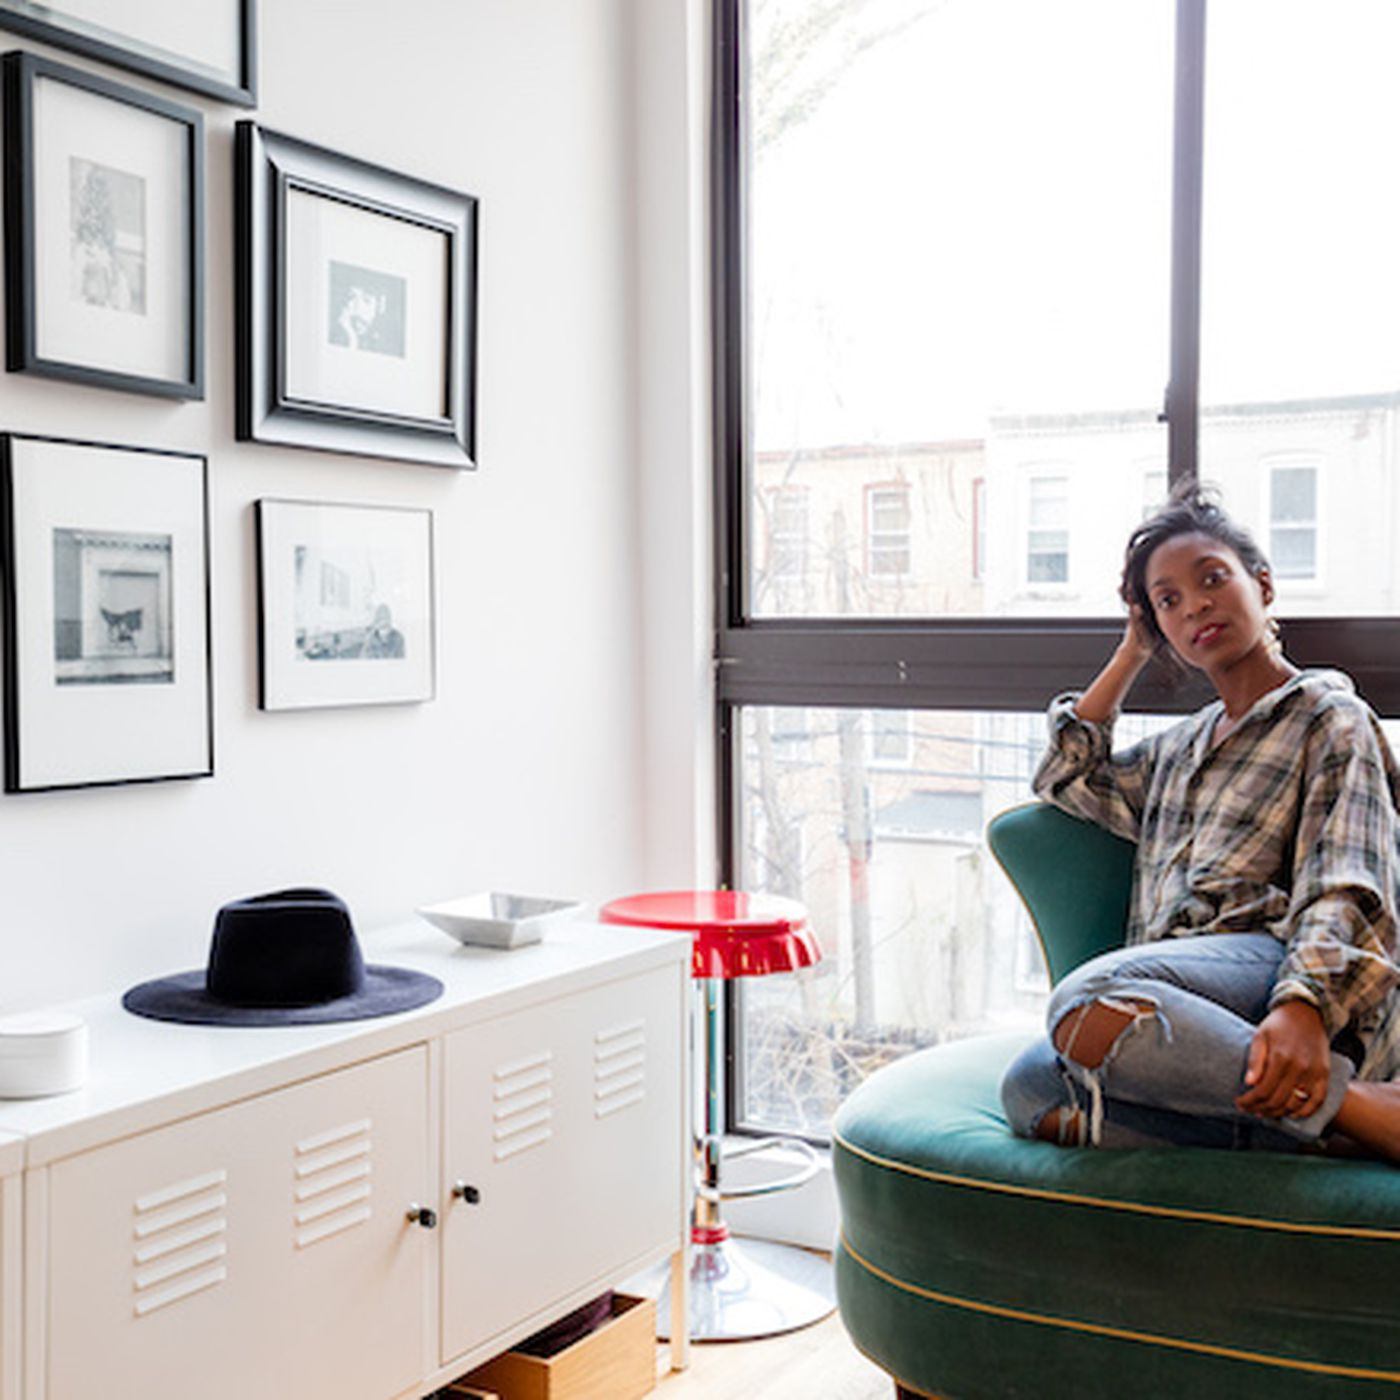 In Bed Stuy a Fashion Editor Finds Balance Between the Old and New